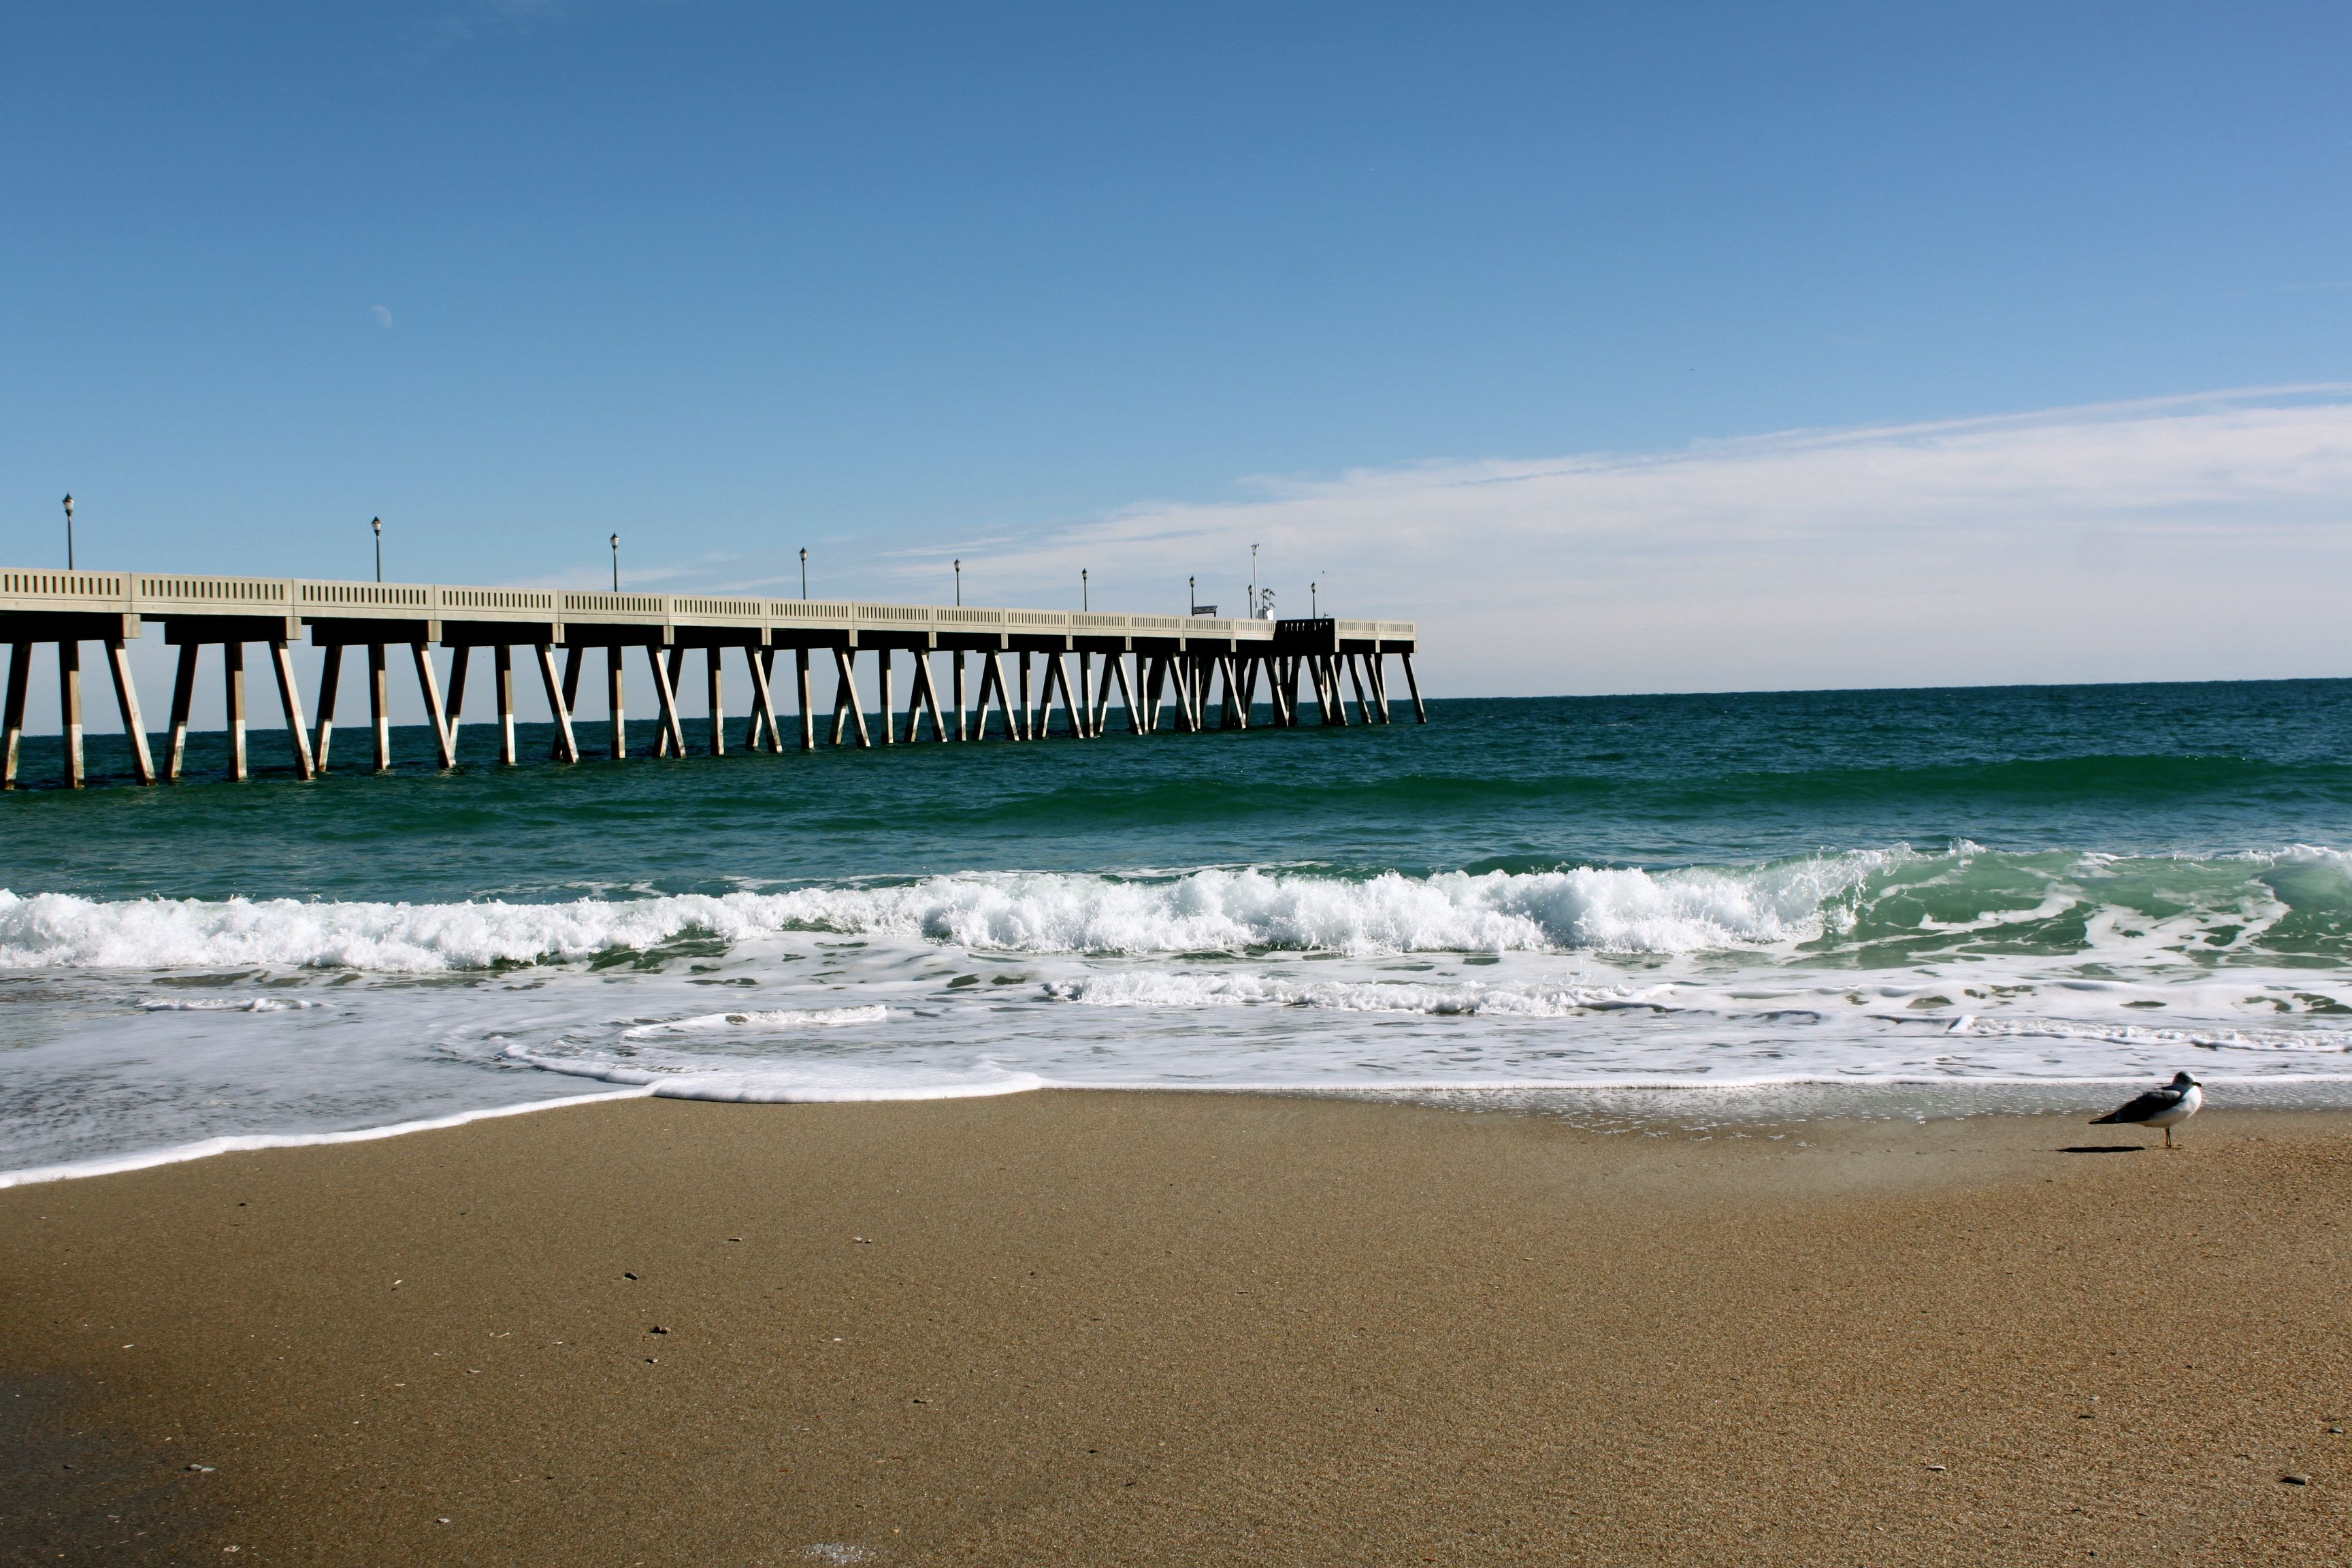 Wrightsville Beach, North Carolina - spent many days at this beach while in lst grade